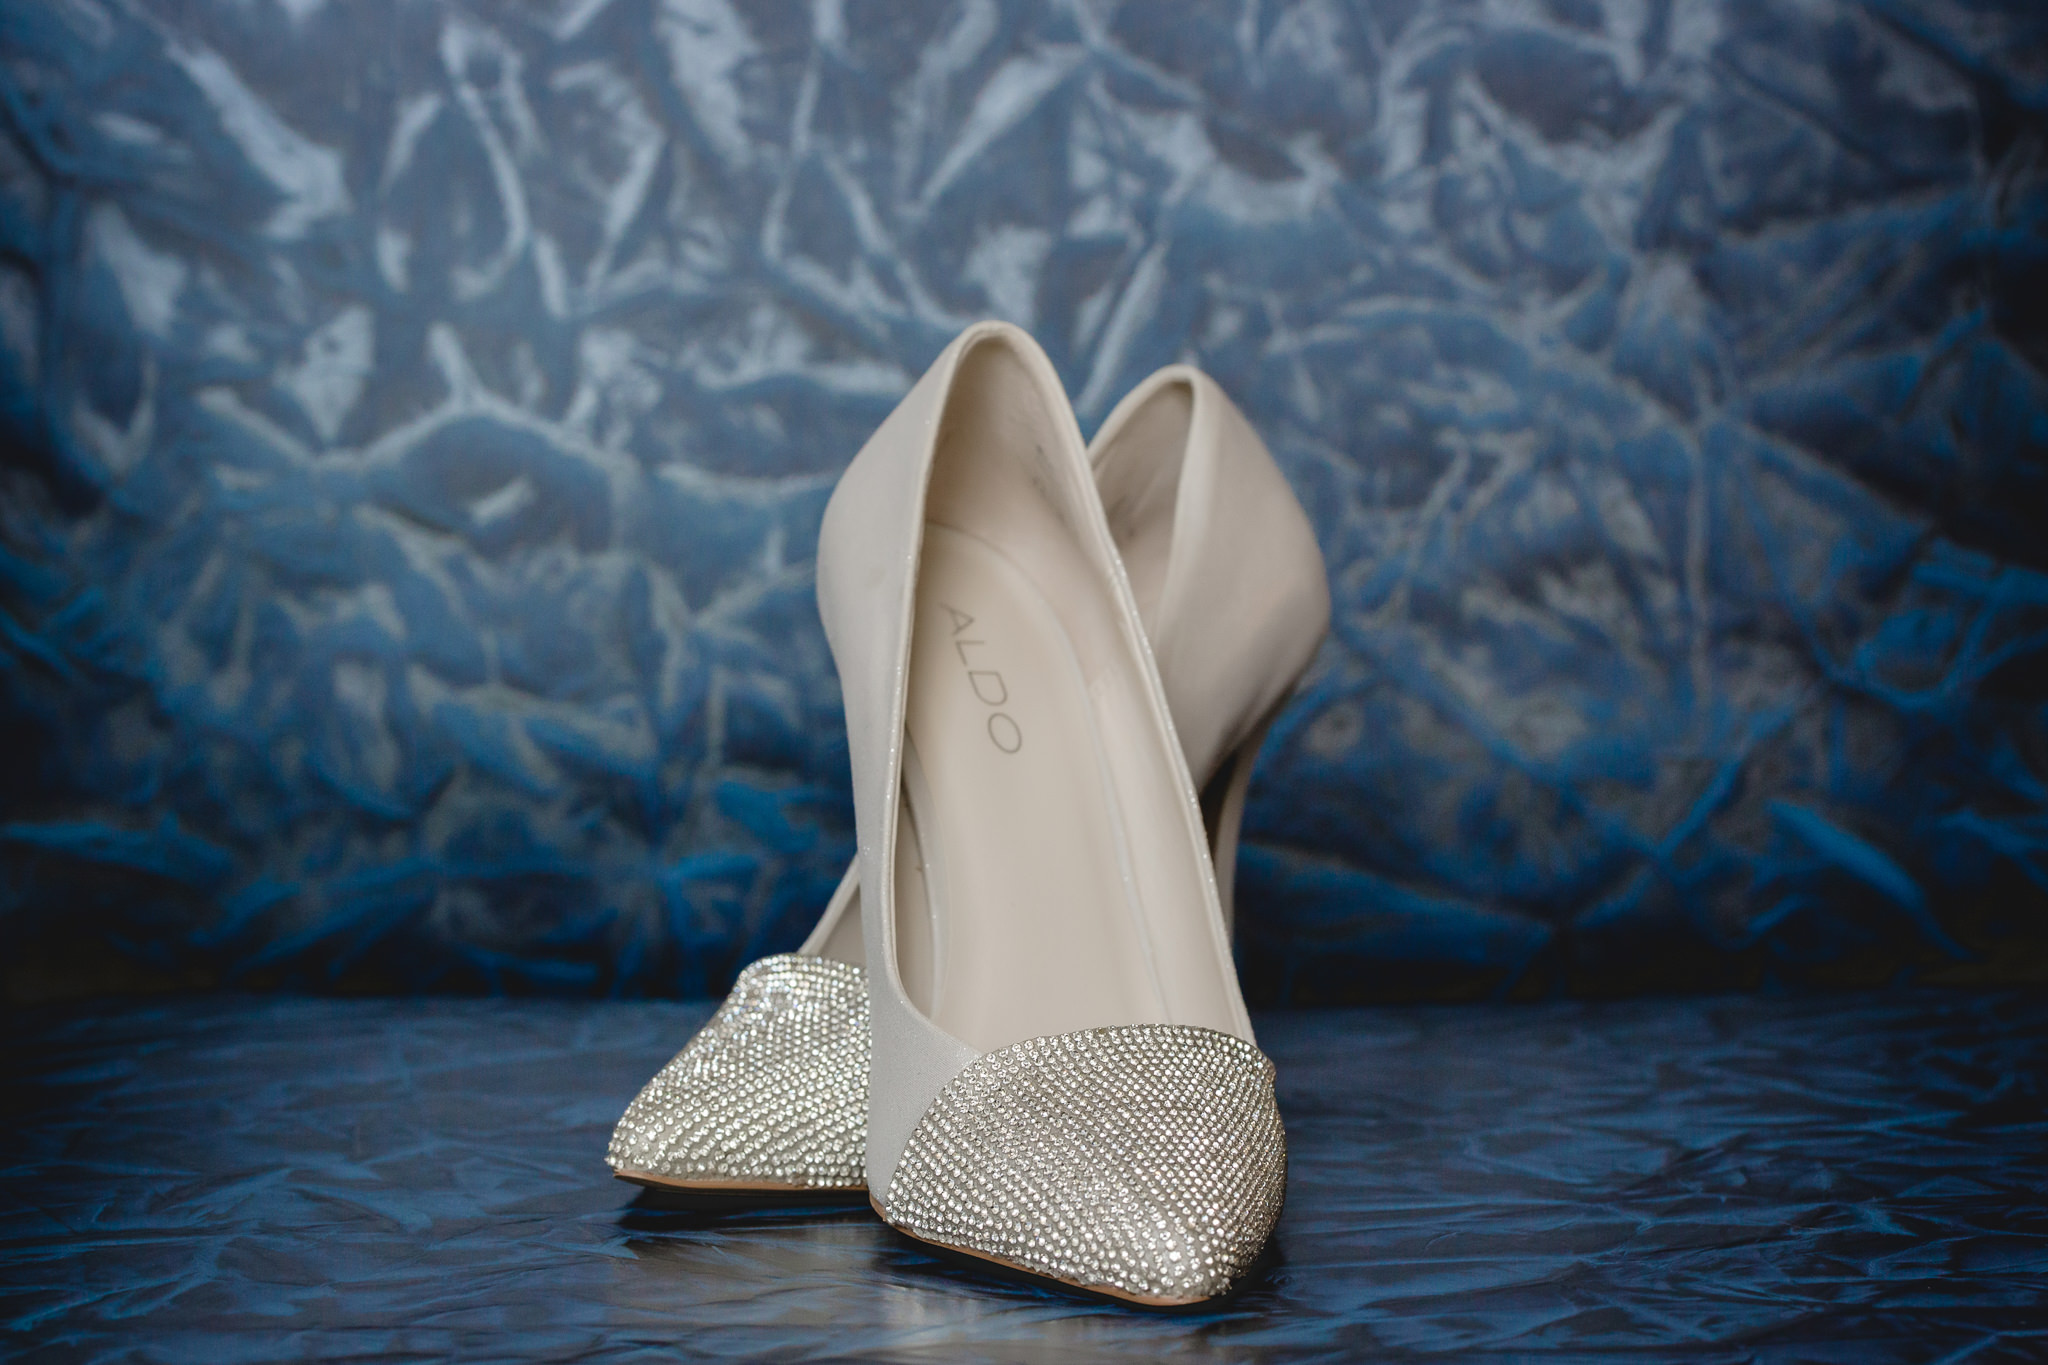 Sparkling Aldo shoes to be worn for a wedding at Pittsburgh Airport Marriott